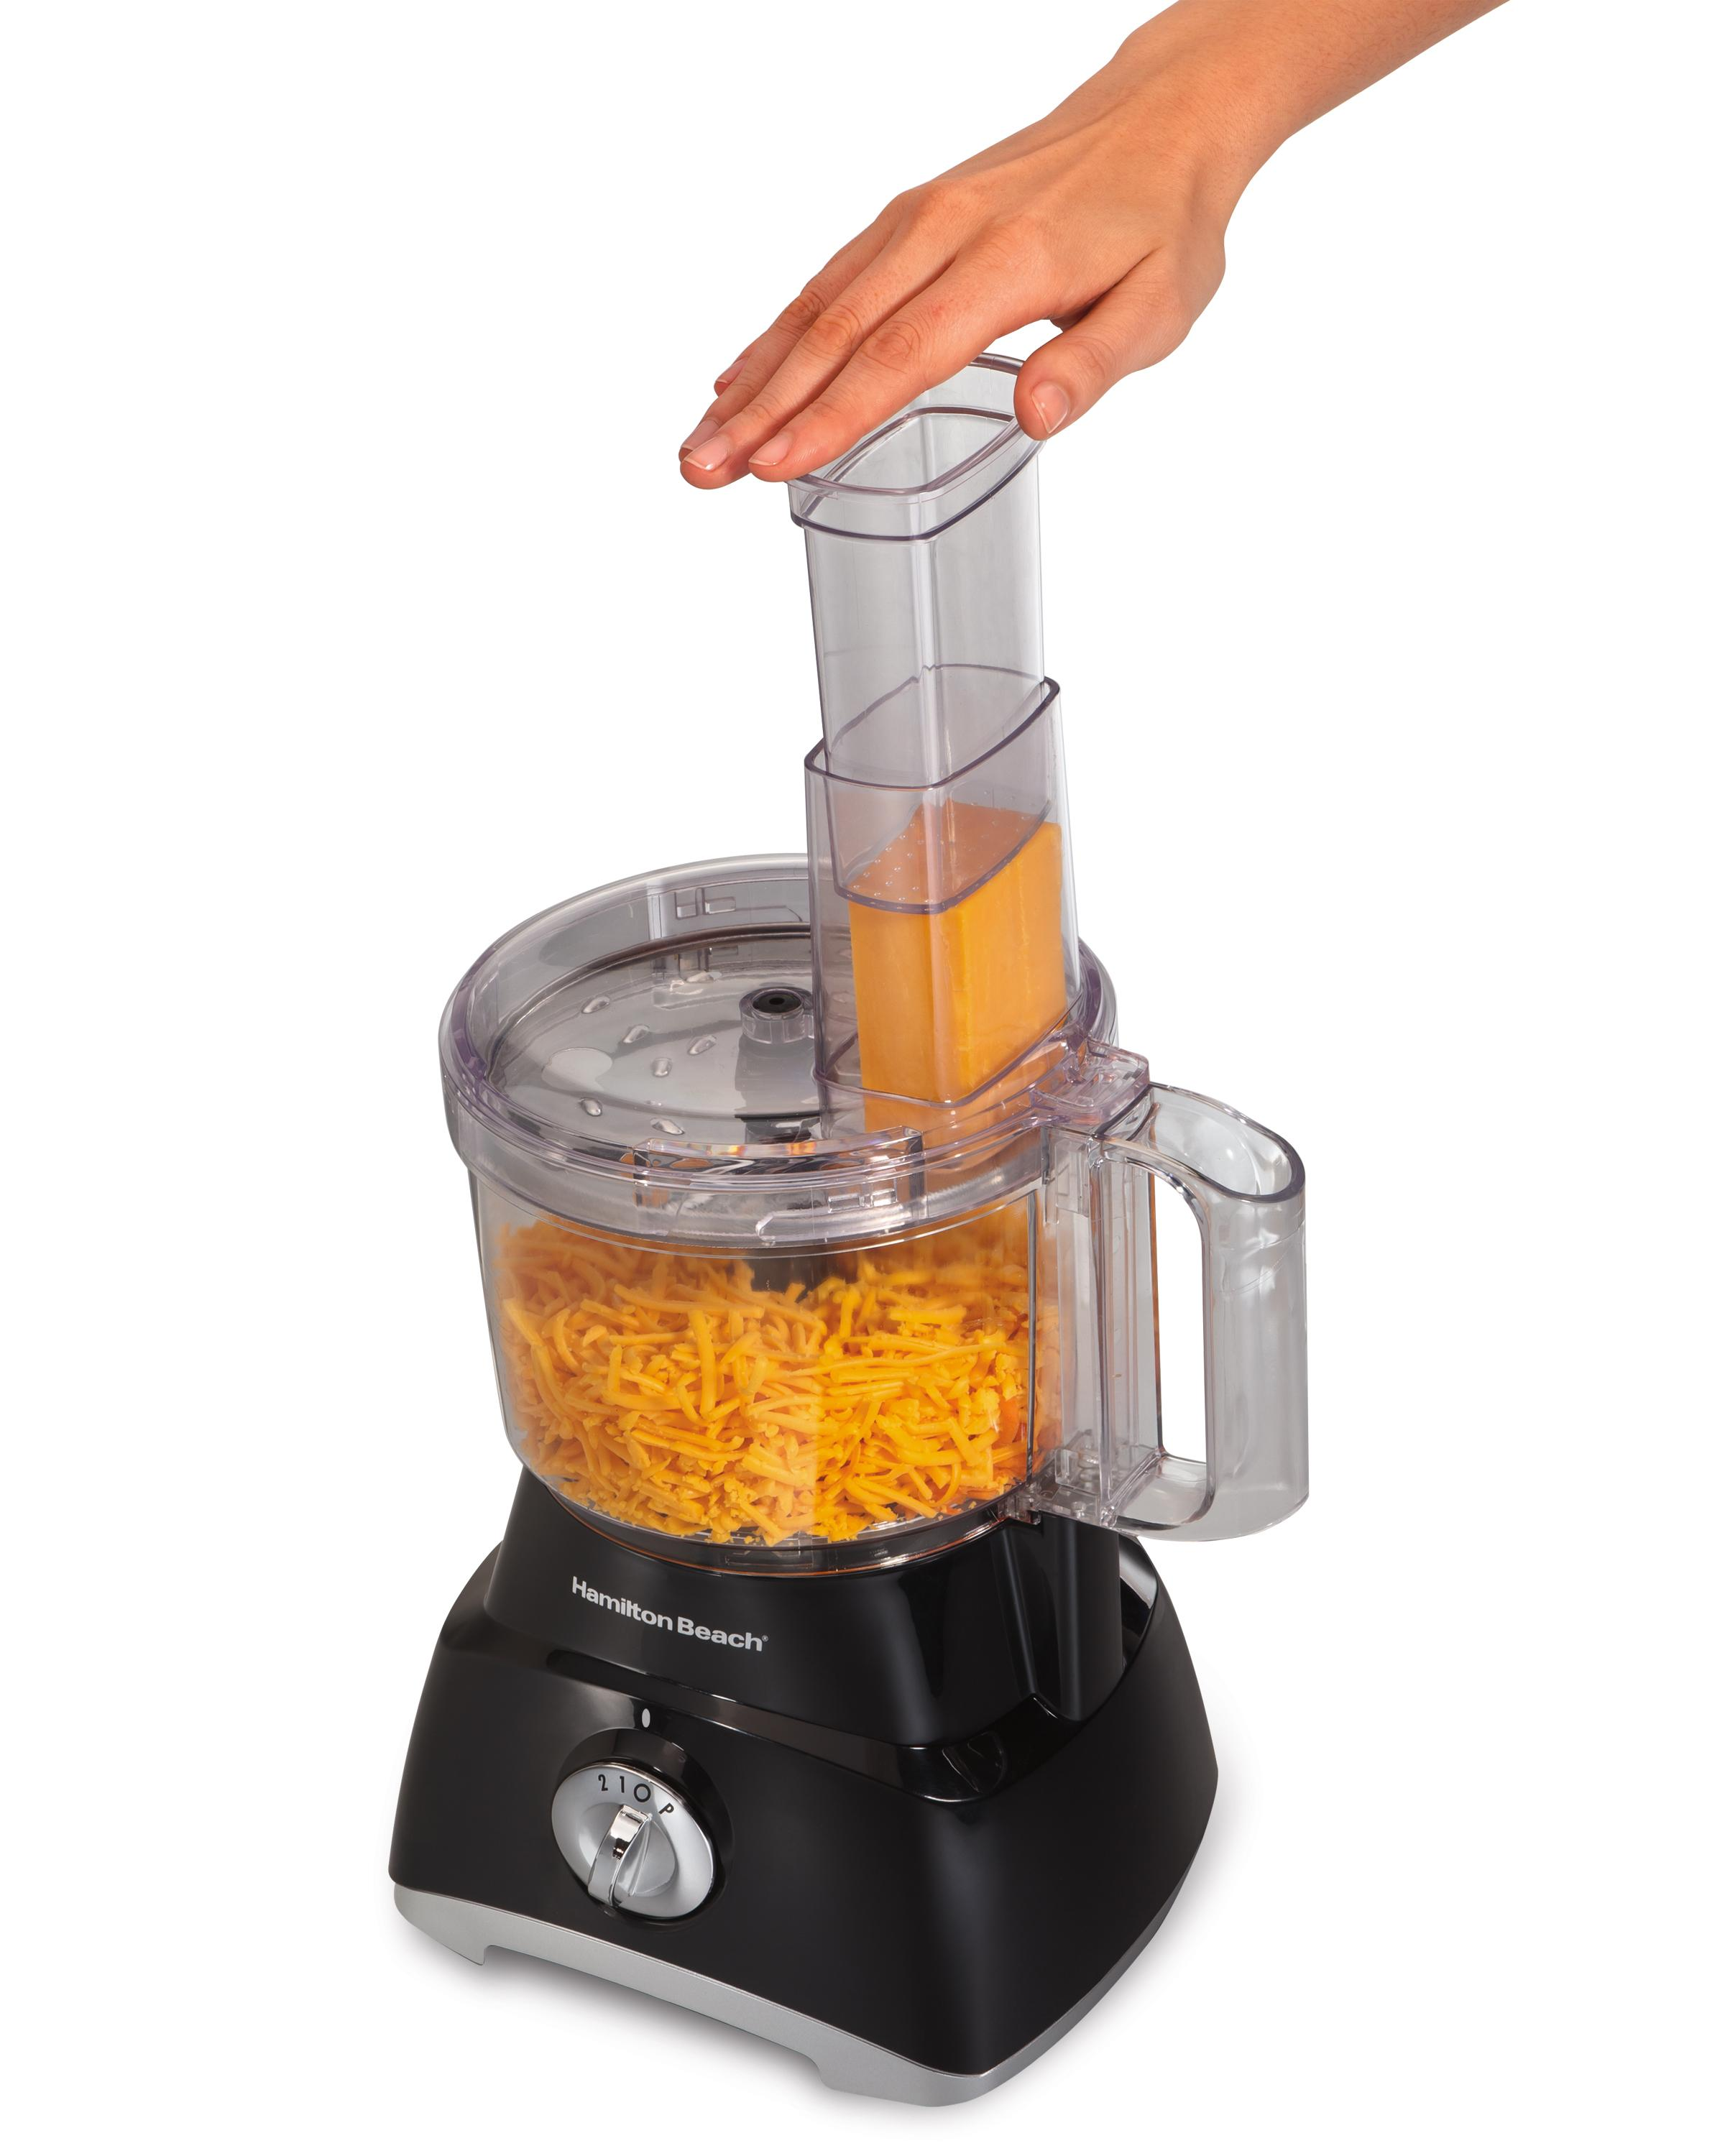 Cuisinart Pro Classic 7-Cup Food Processor DLCSY The Pro Classic 7-cup Food Processor makes all of your favorites, from stir-fries and main course salads to peanut butter and homemade bread.